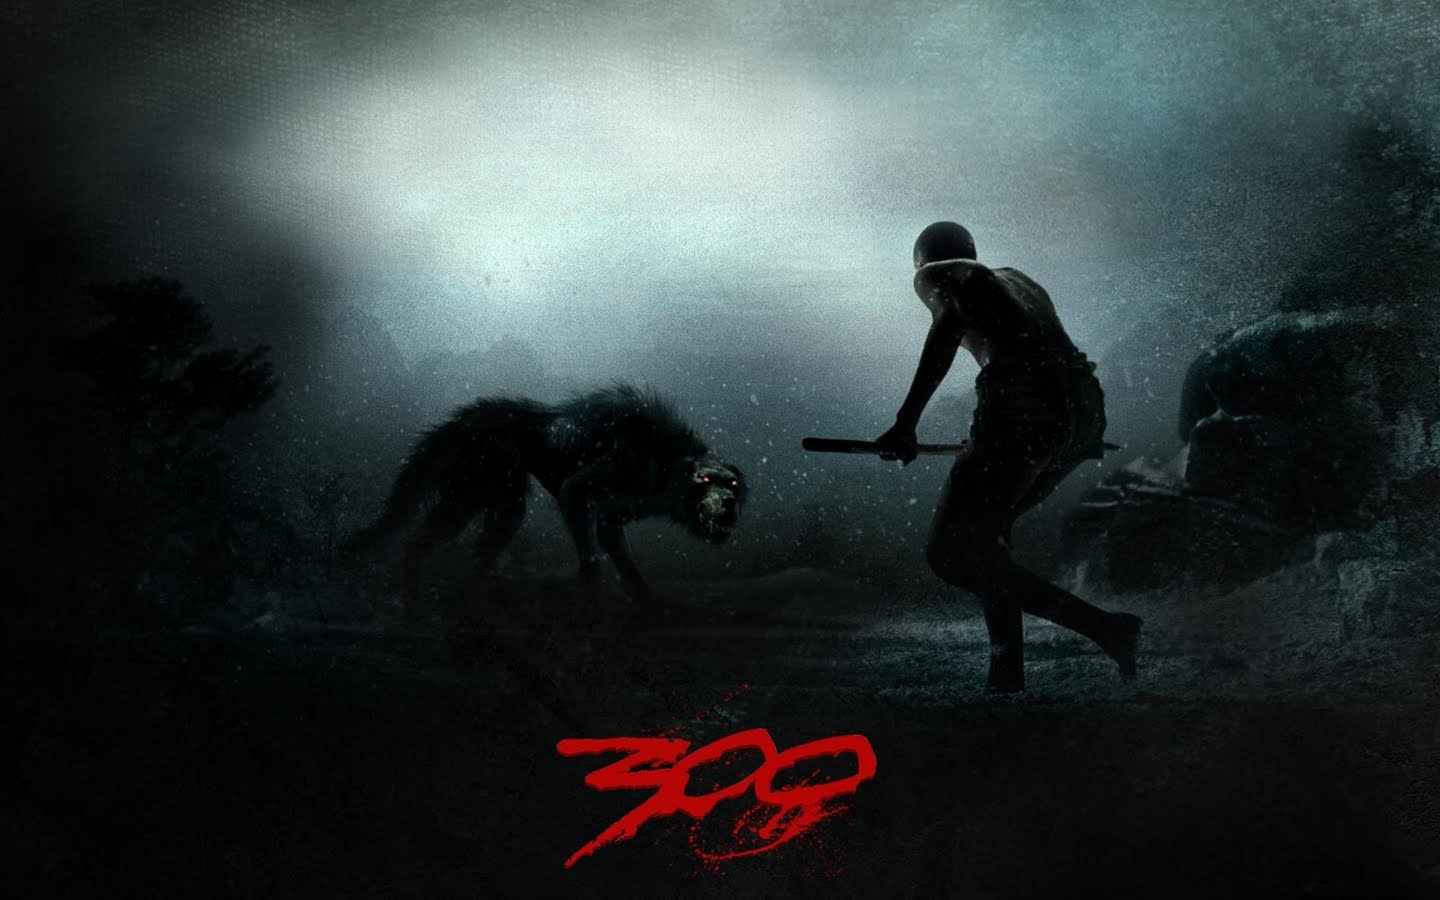 http://3.bp.blogspot.com/_mC1TEdZ4gks/TLmKmZyeJWI/AAAAAAAAOSg/20pp-ERzeE0/s1600/300+Movie+Wallpapers+HD+-+03+-+www.Wallpapersshare.Blogspot.com.jpeg